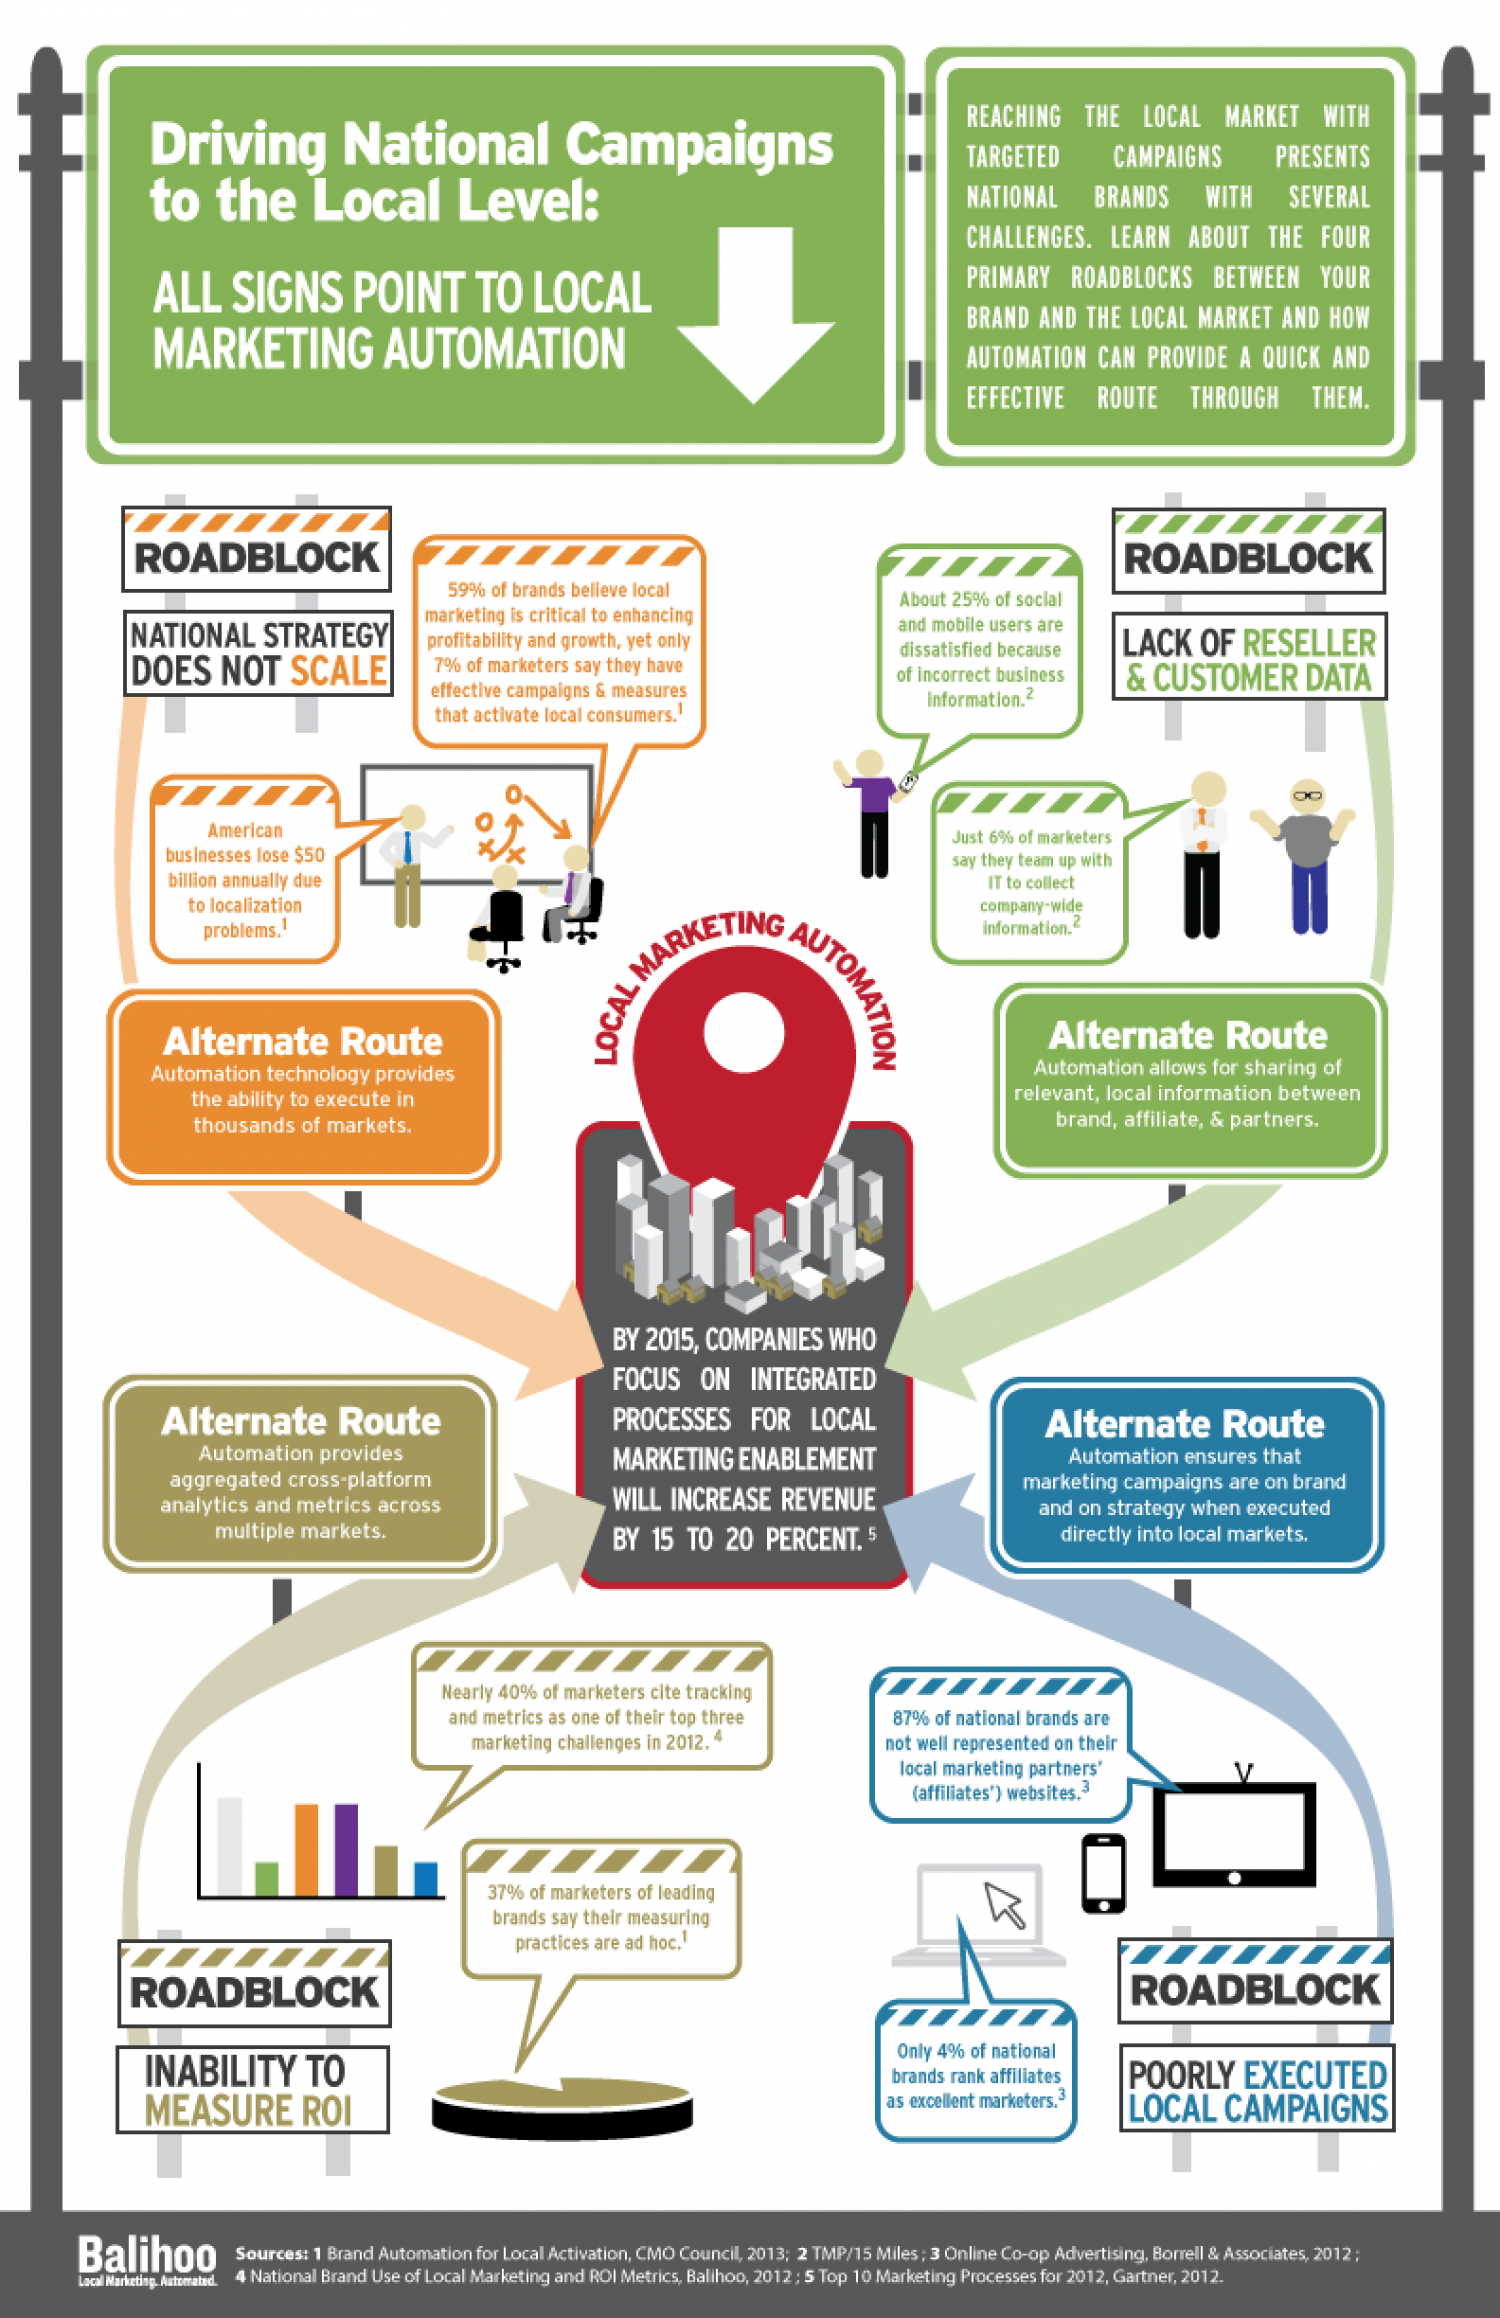 Driving National Campaigns to the Local Level Infographic